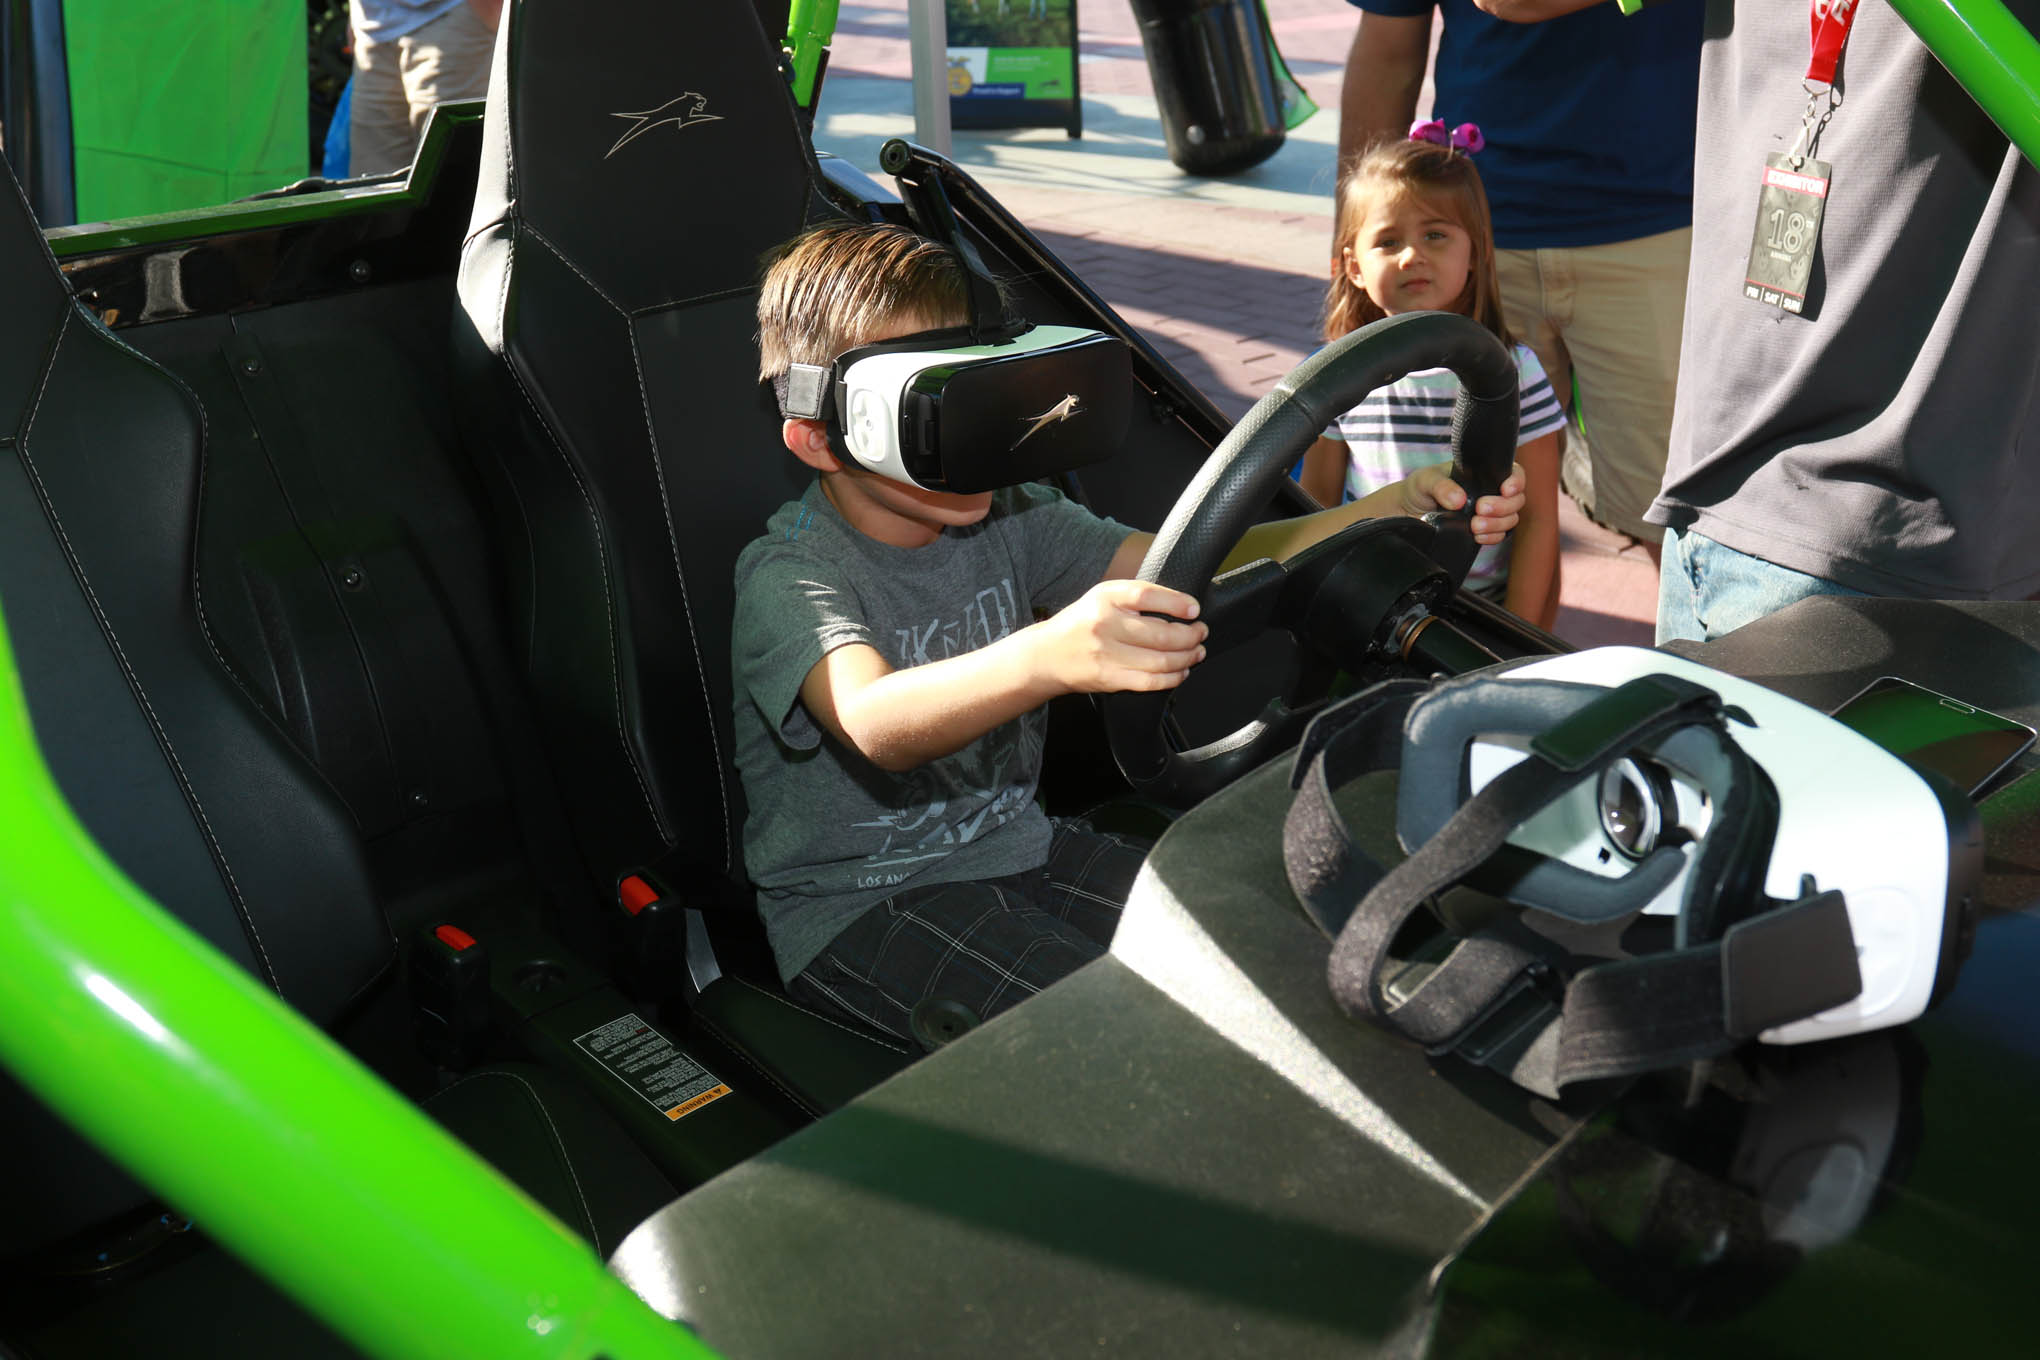 Who says you need real dirt? Arctic Cat had a VR experience right there at the show to give all a view of what off-roading is really like.